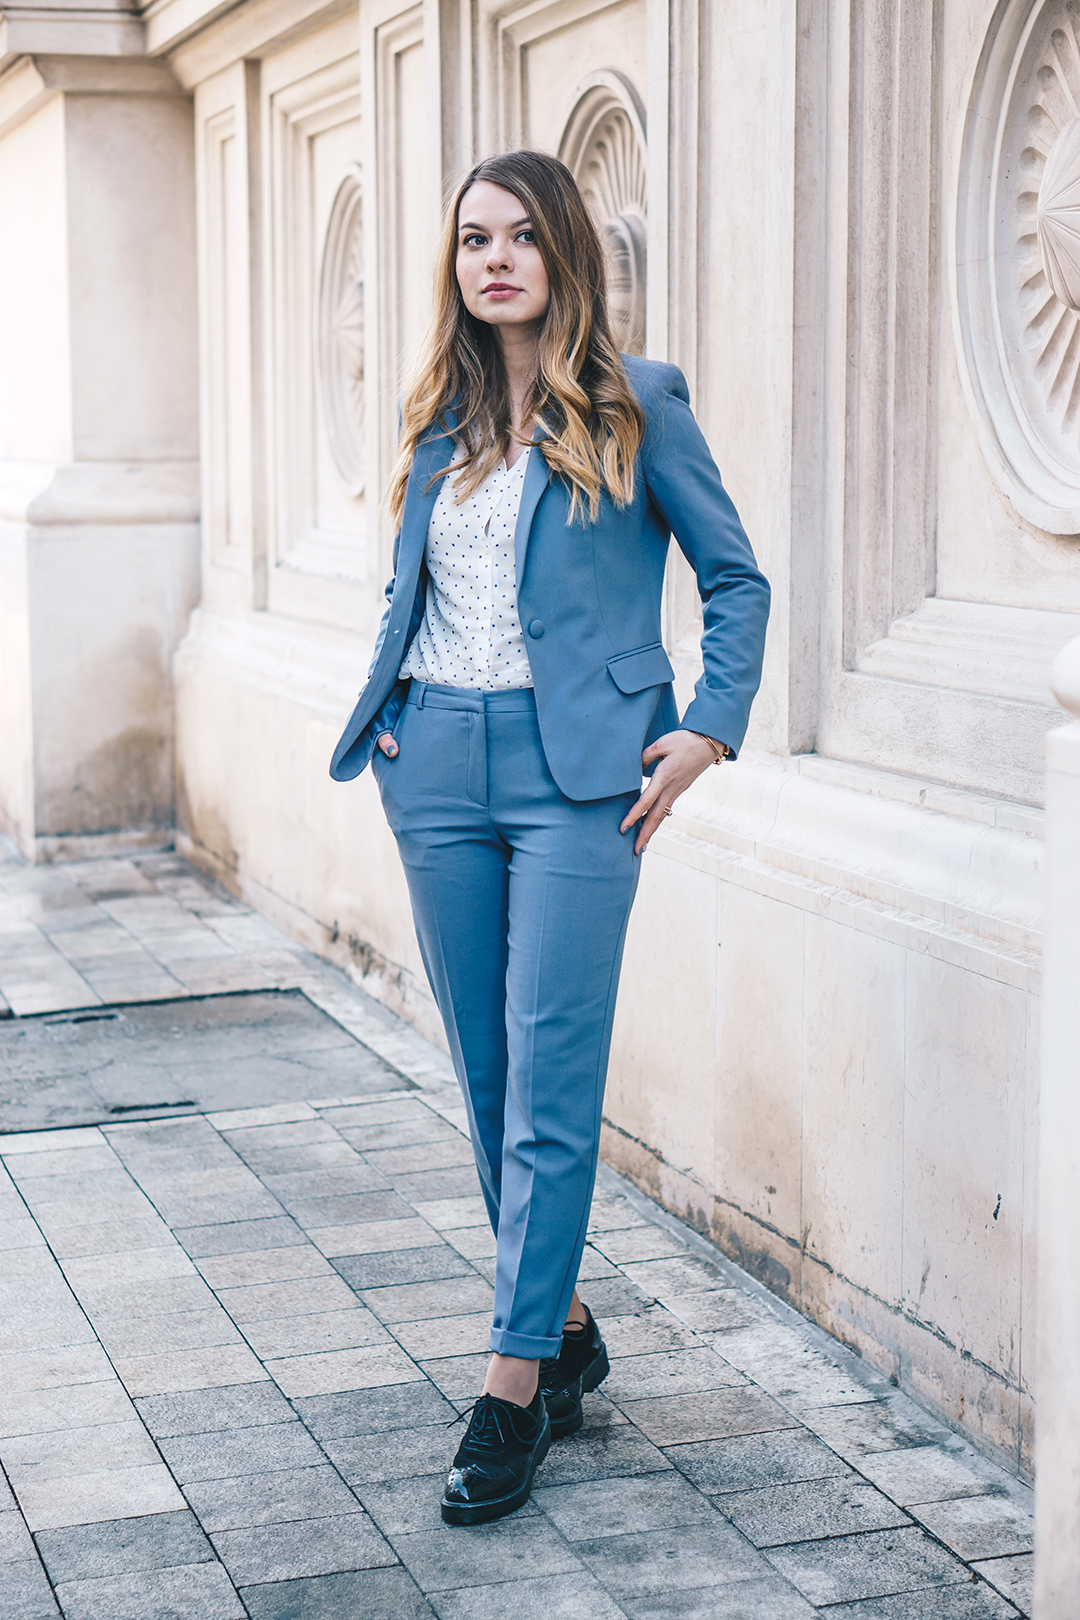 Blue suit :: How to wear it in a more casual way - Pink WishPink Wish